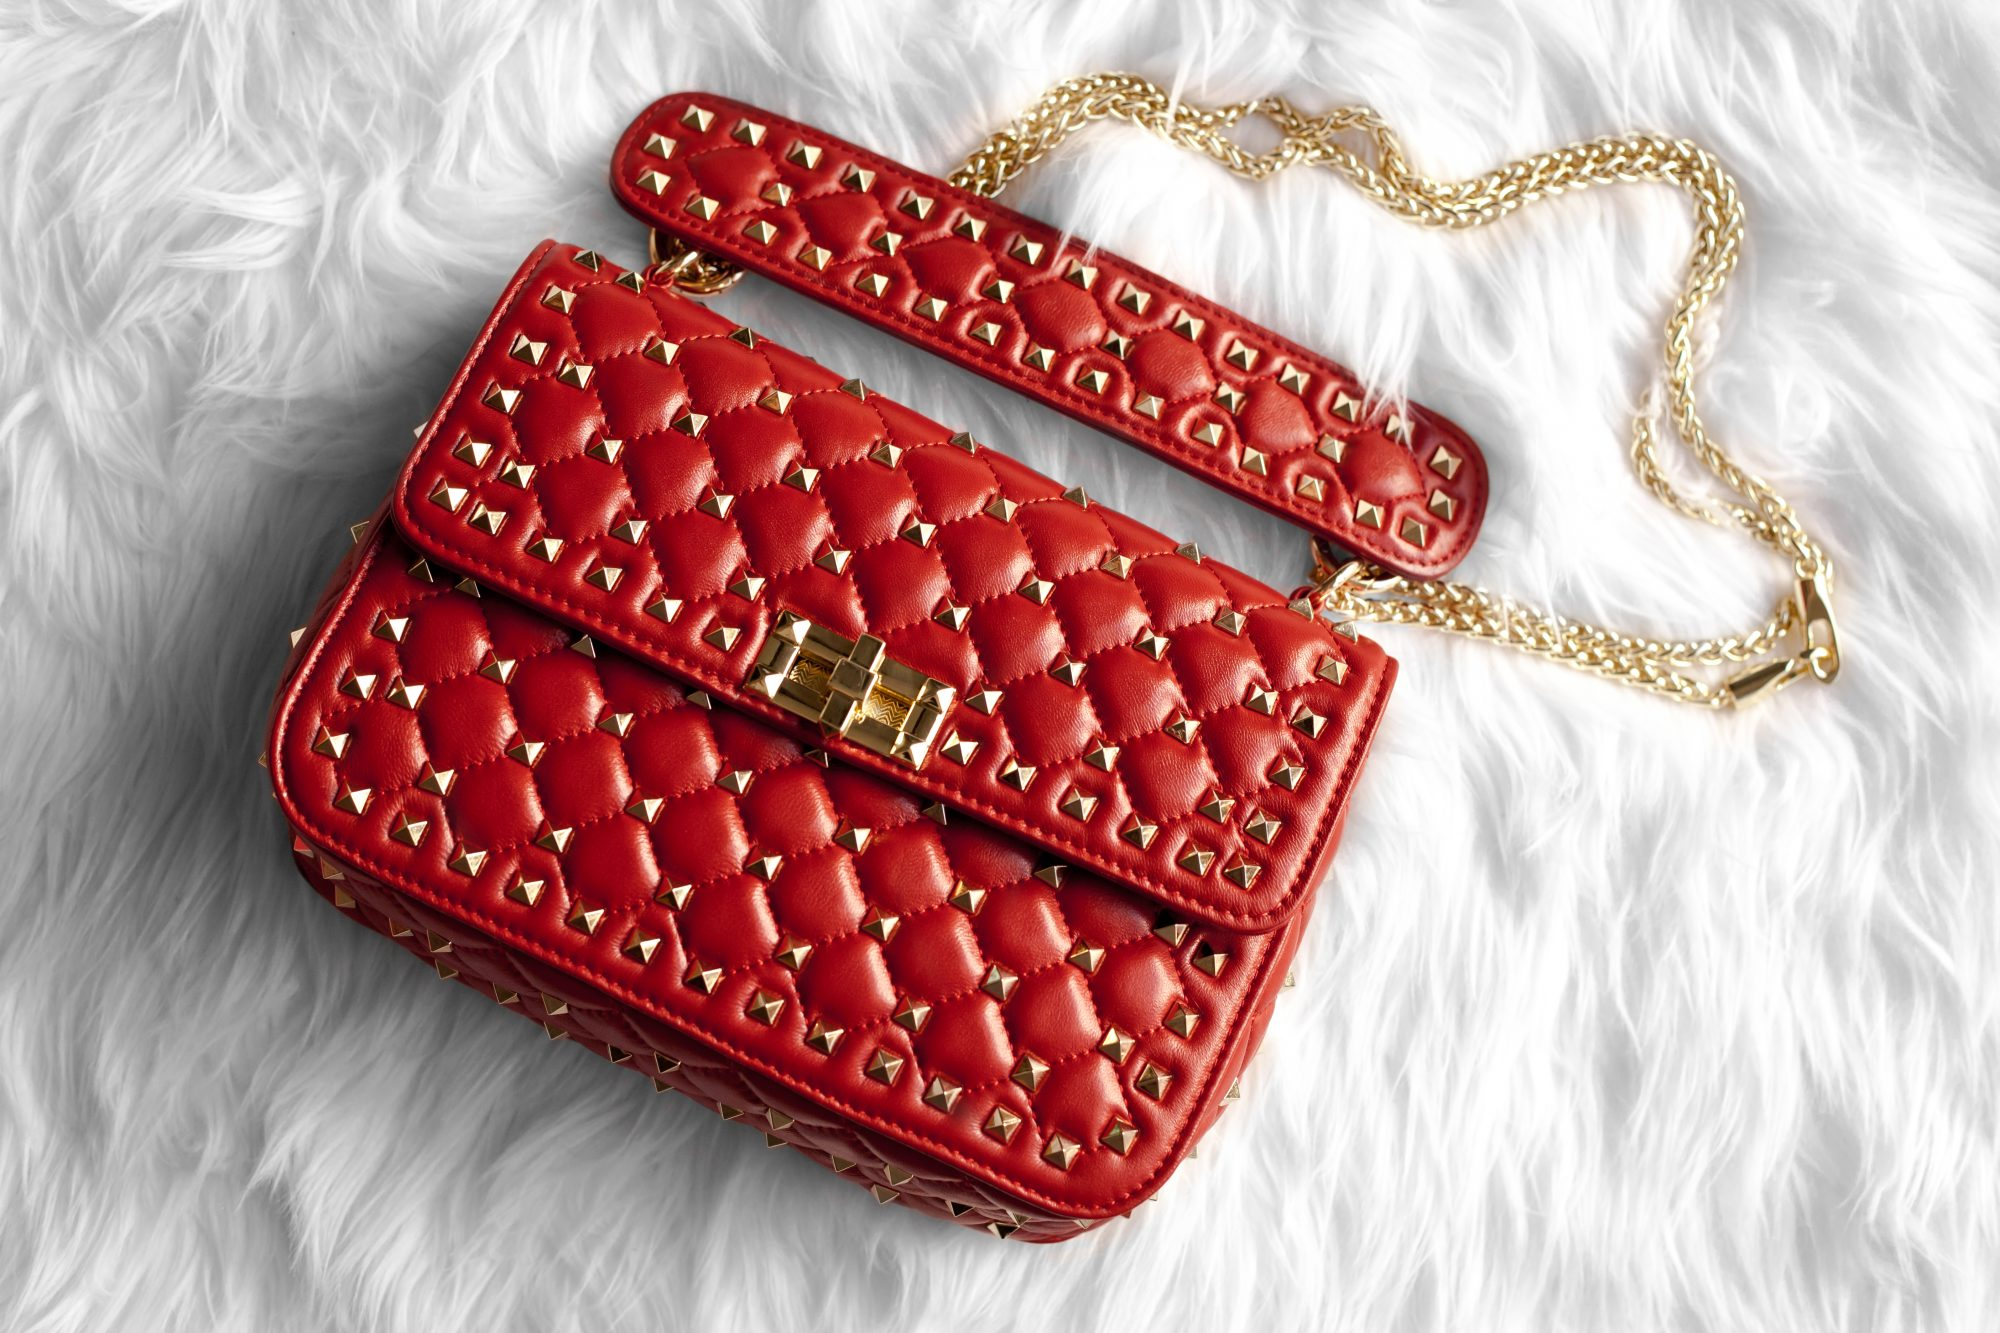 0c1fcf8544a5 Looking for a dupe of the $3,000 Valentino Rockstud Top Handle Bag without  the expensive price ...